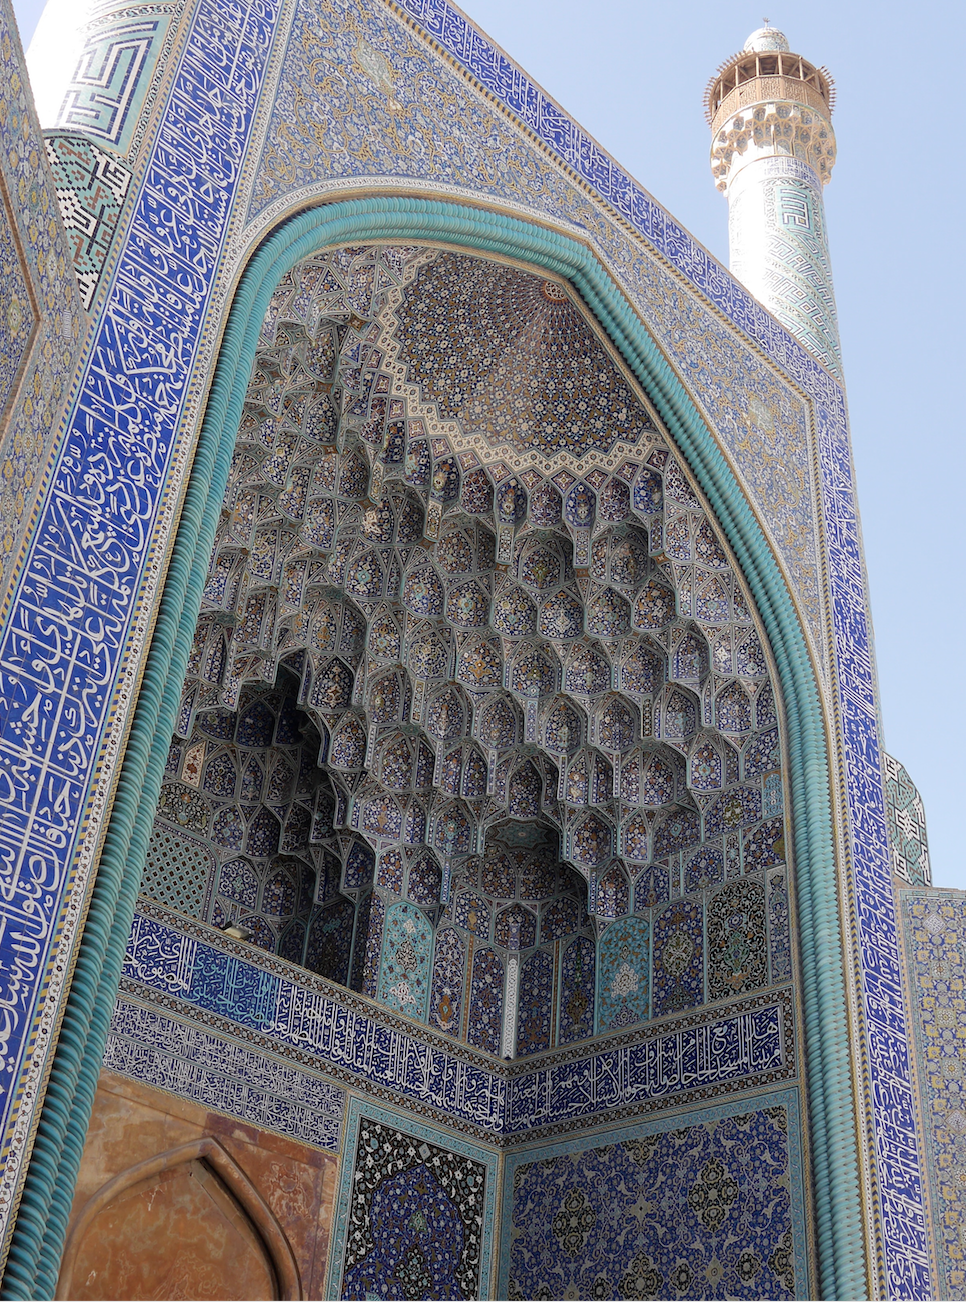 A mosque in Isfahan, Iran, photographed by Marianne A. Kinzer